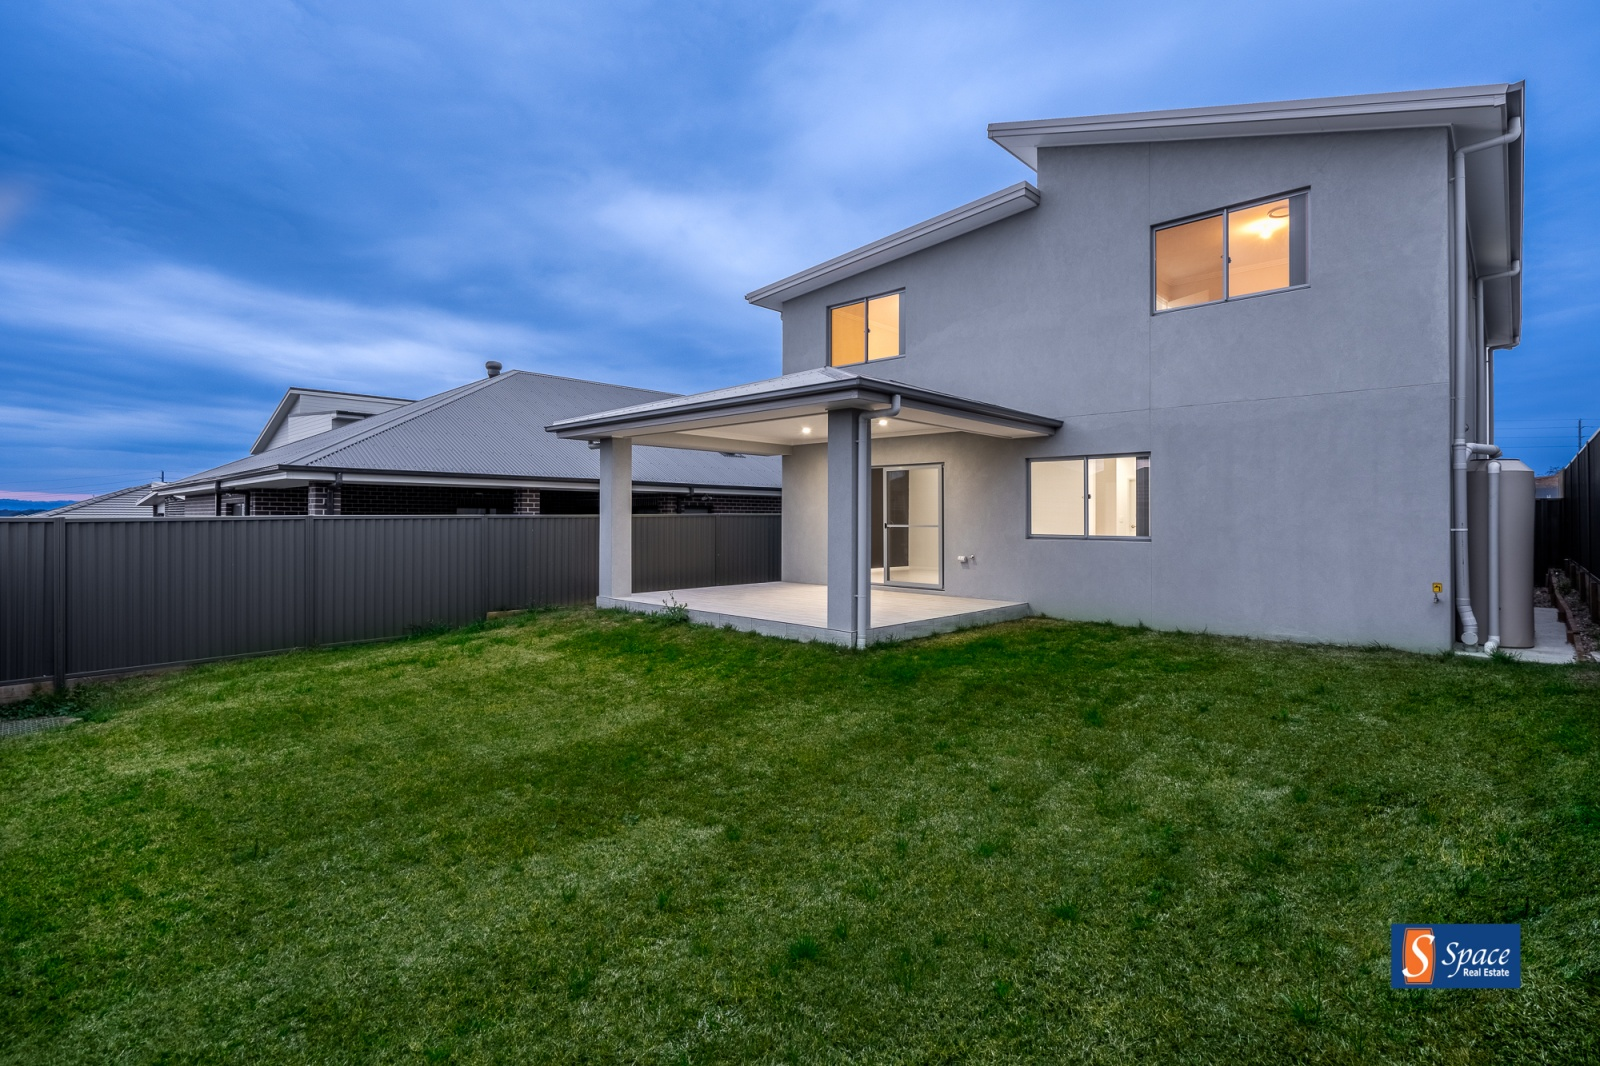 137 Holden Drive,Oran Park,NSW,4 Bedrooms Bedrooms,3 BathroomsBathrooms,House,Holden Drive,1114